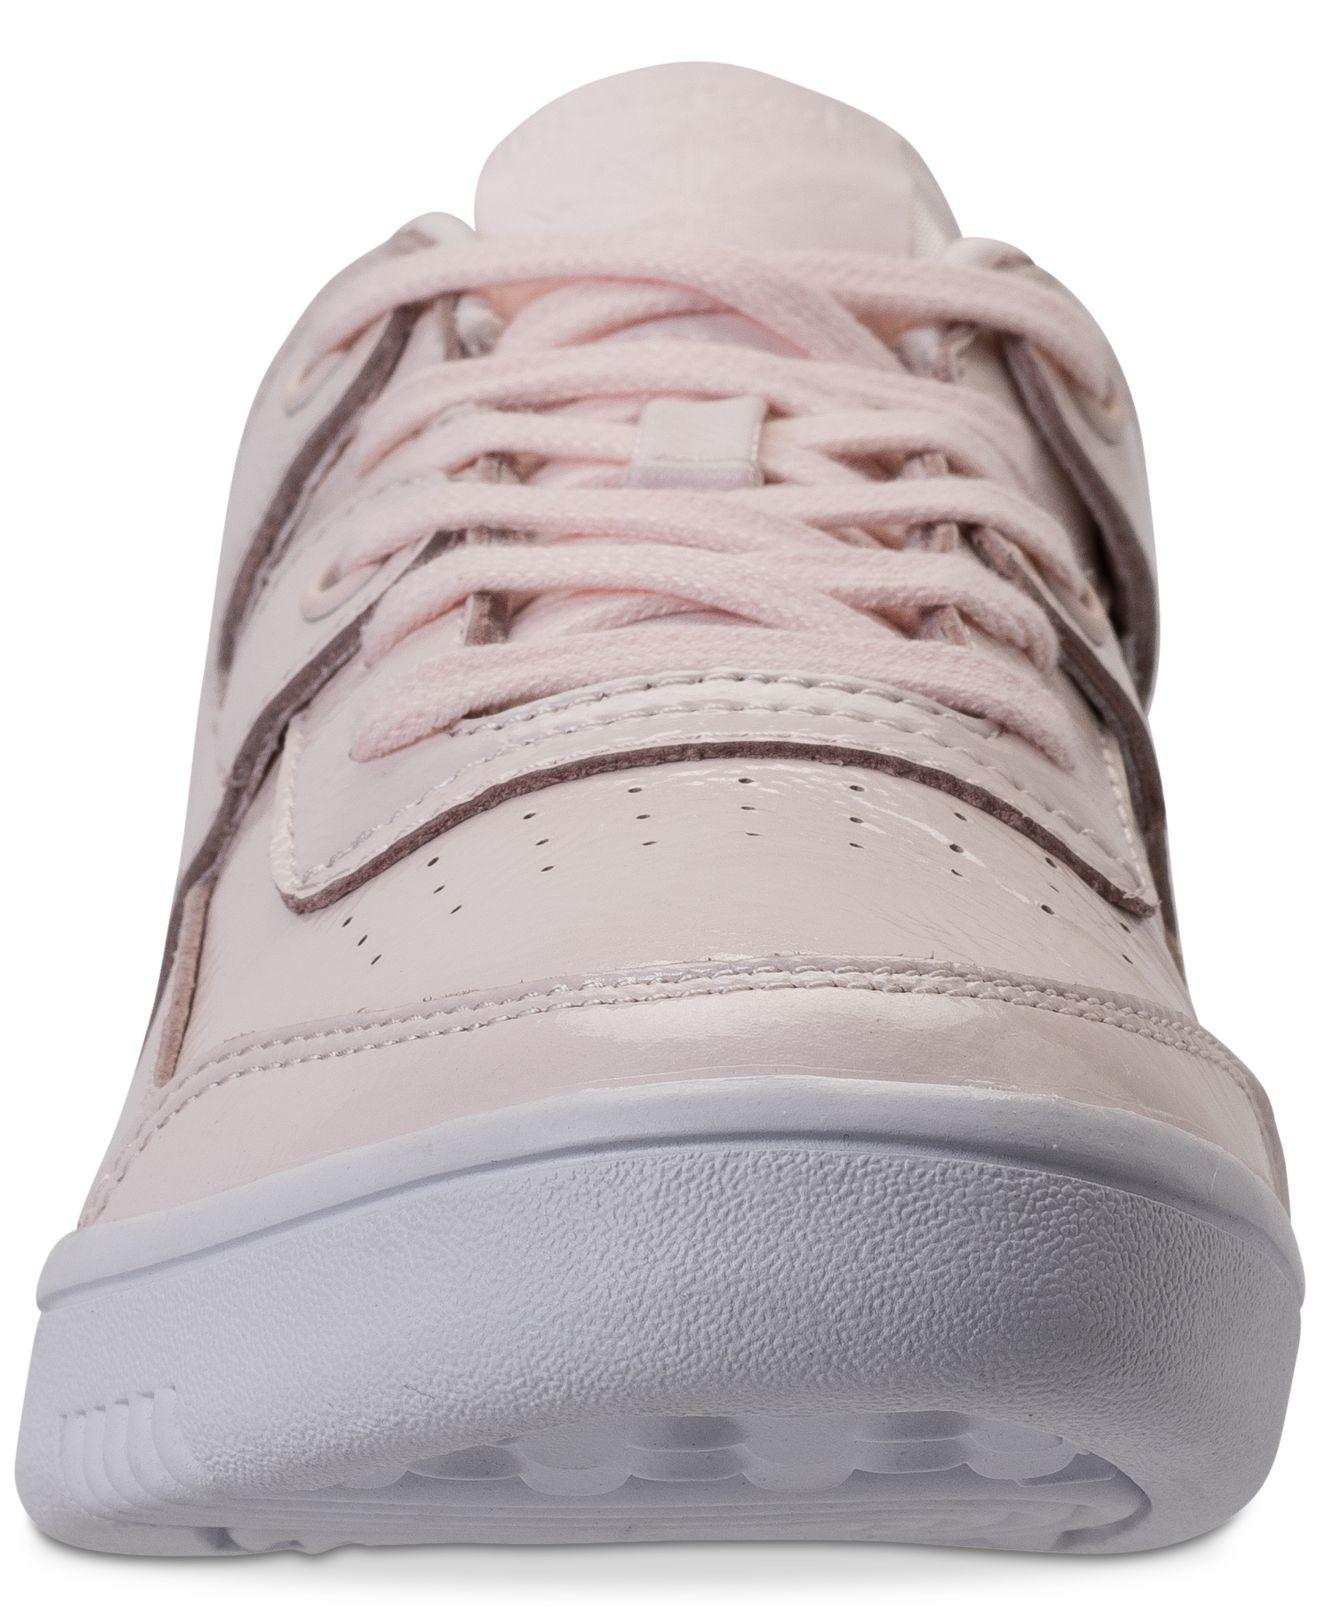 d03d4c7bb76bf Lyst - Reebok Workout Plus Iridescent Casual Sneakers From Finish Line